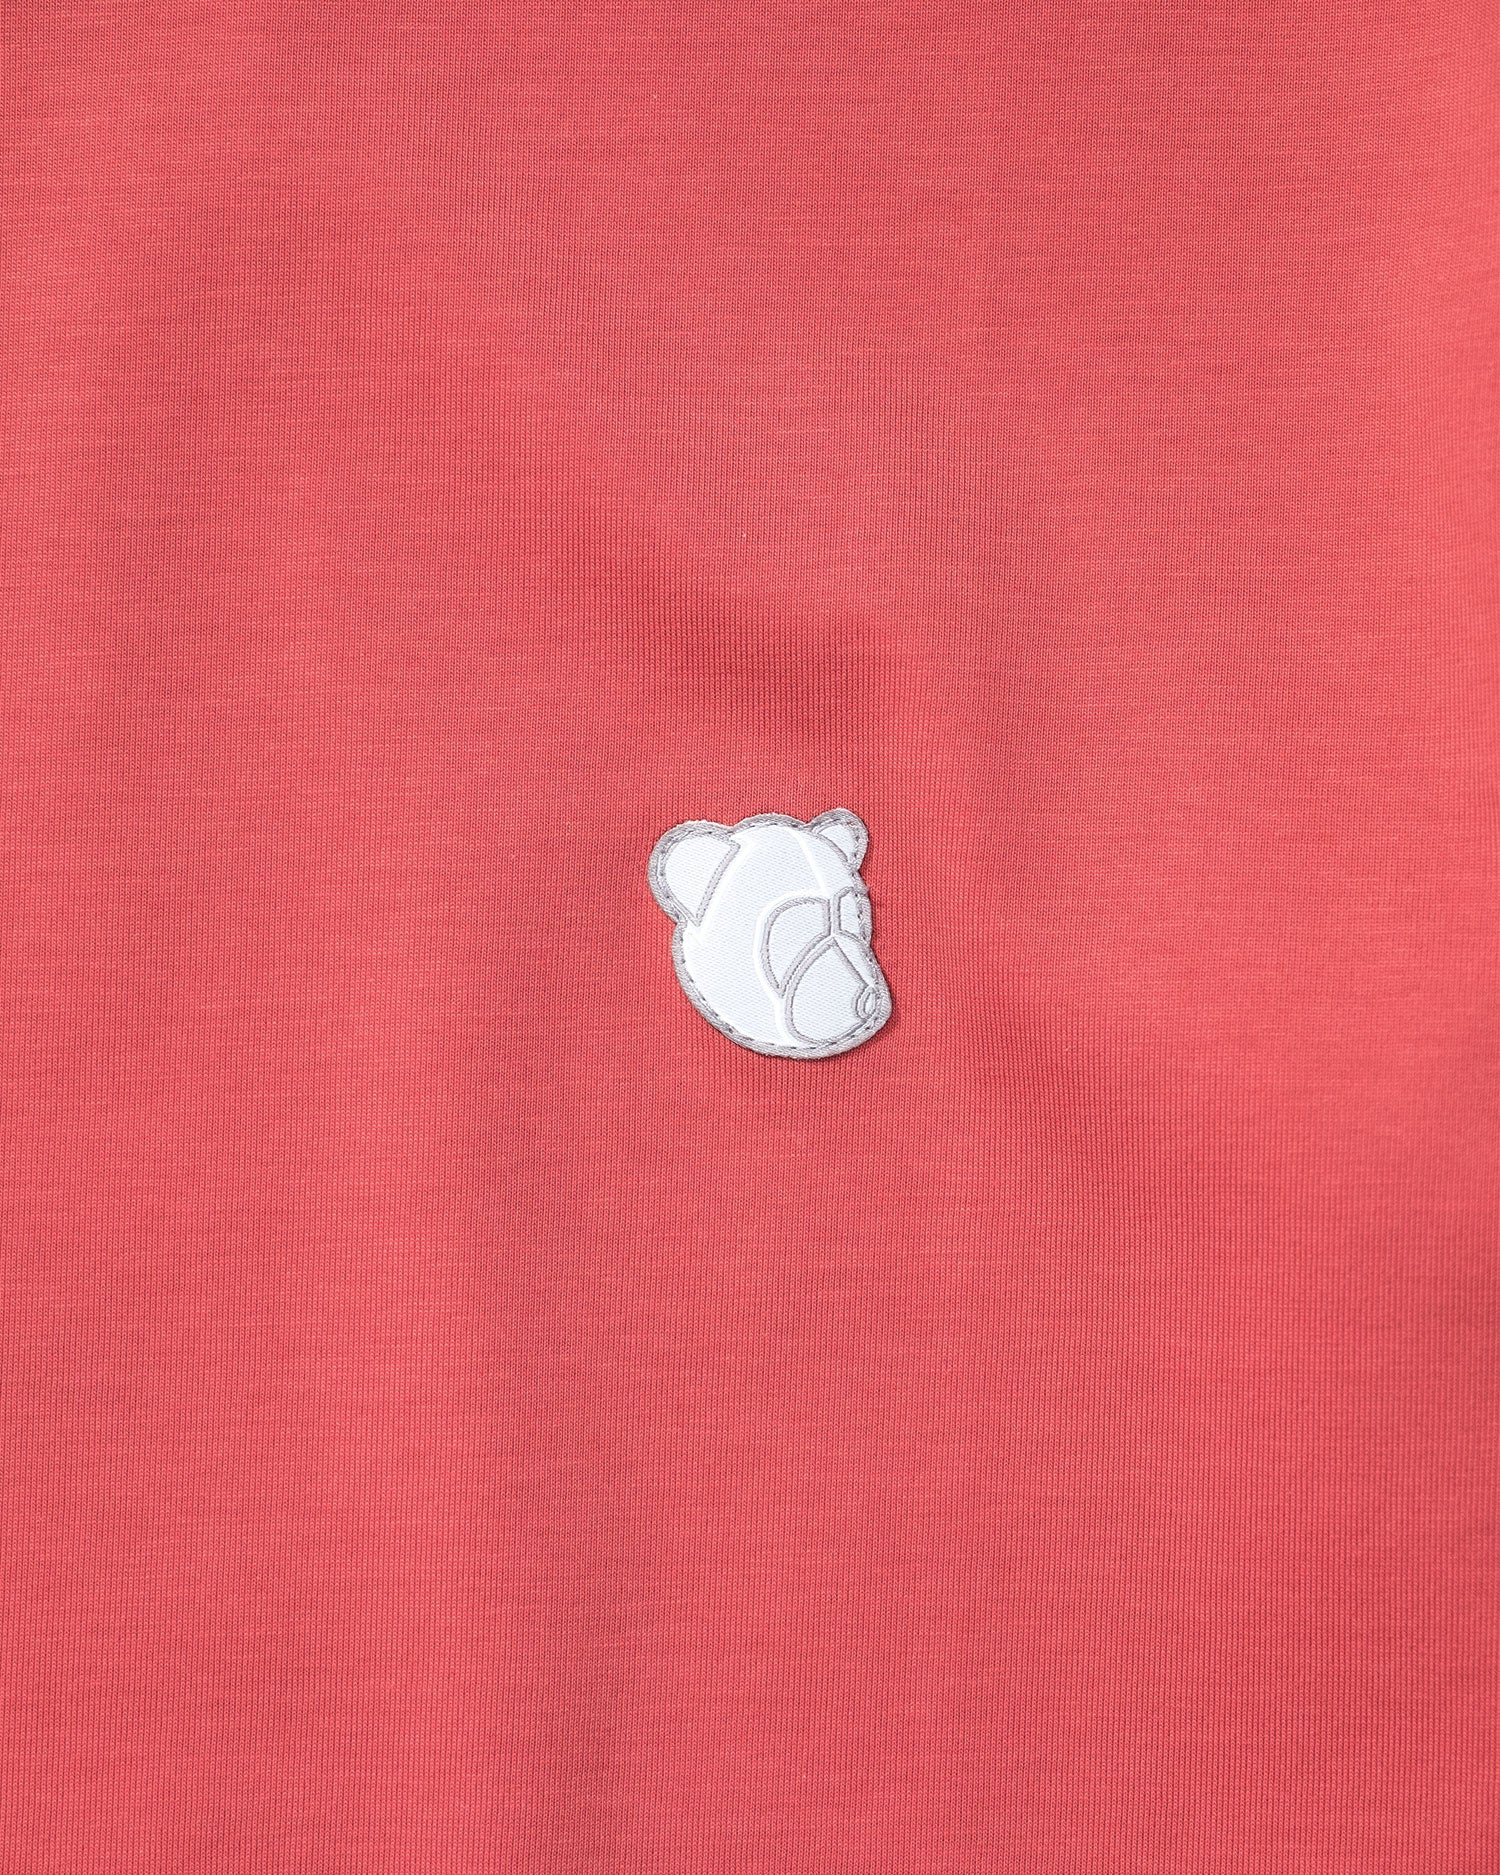 Tonsure Teddy Logo Tee Faded Red